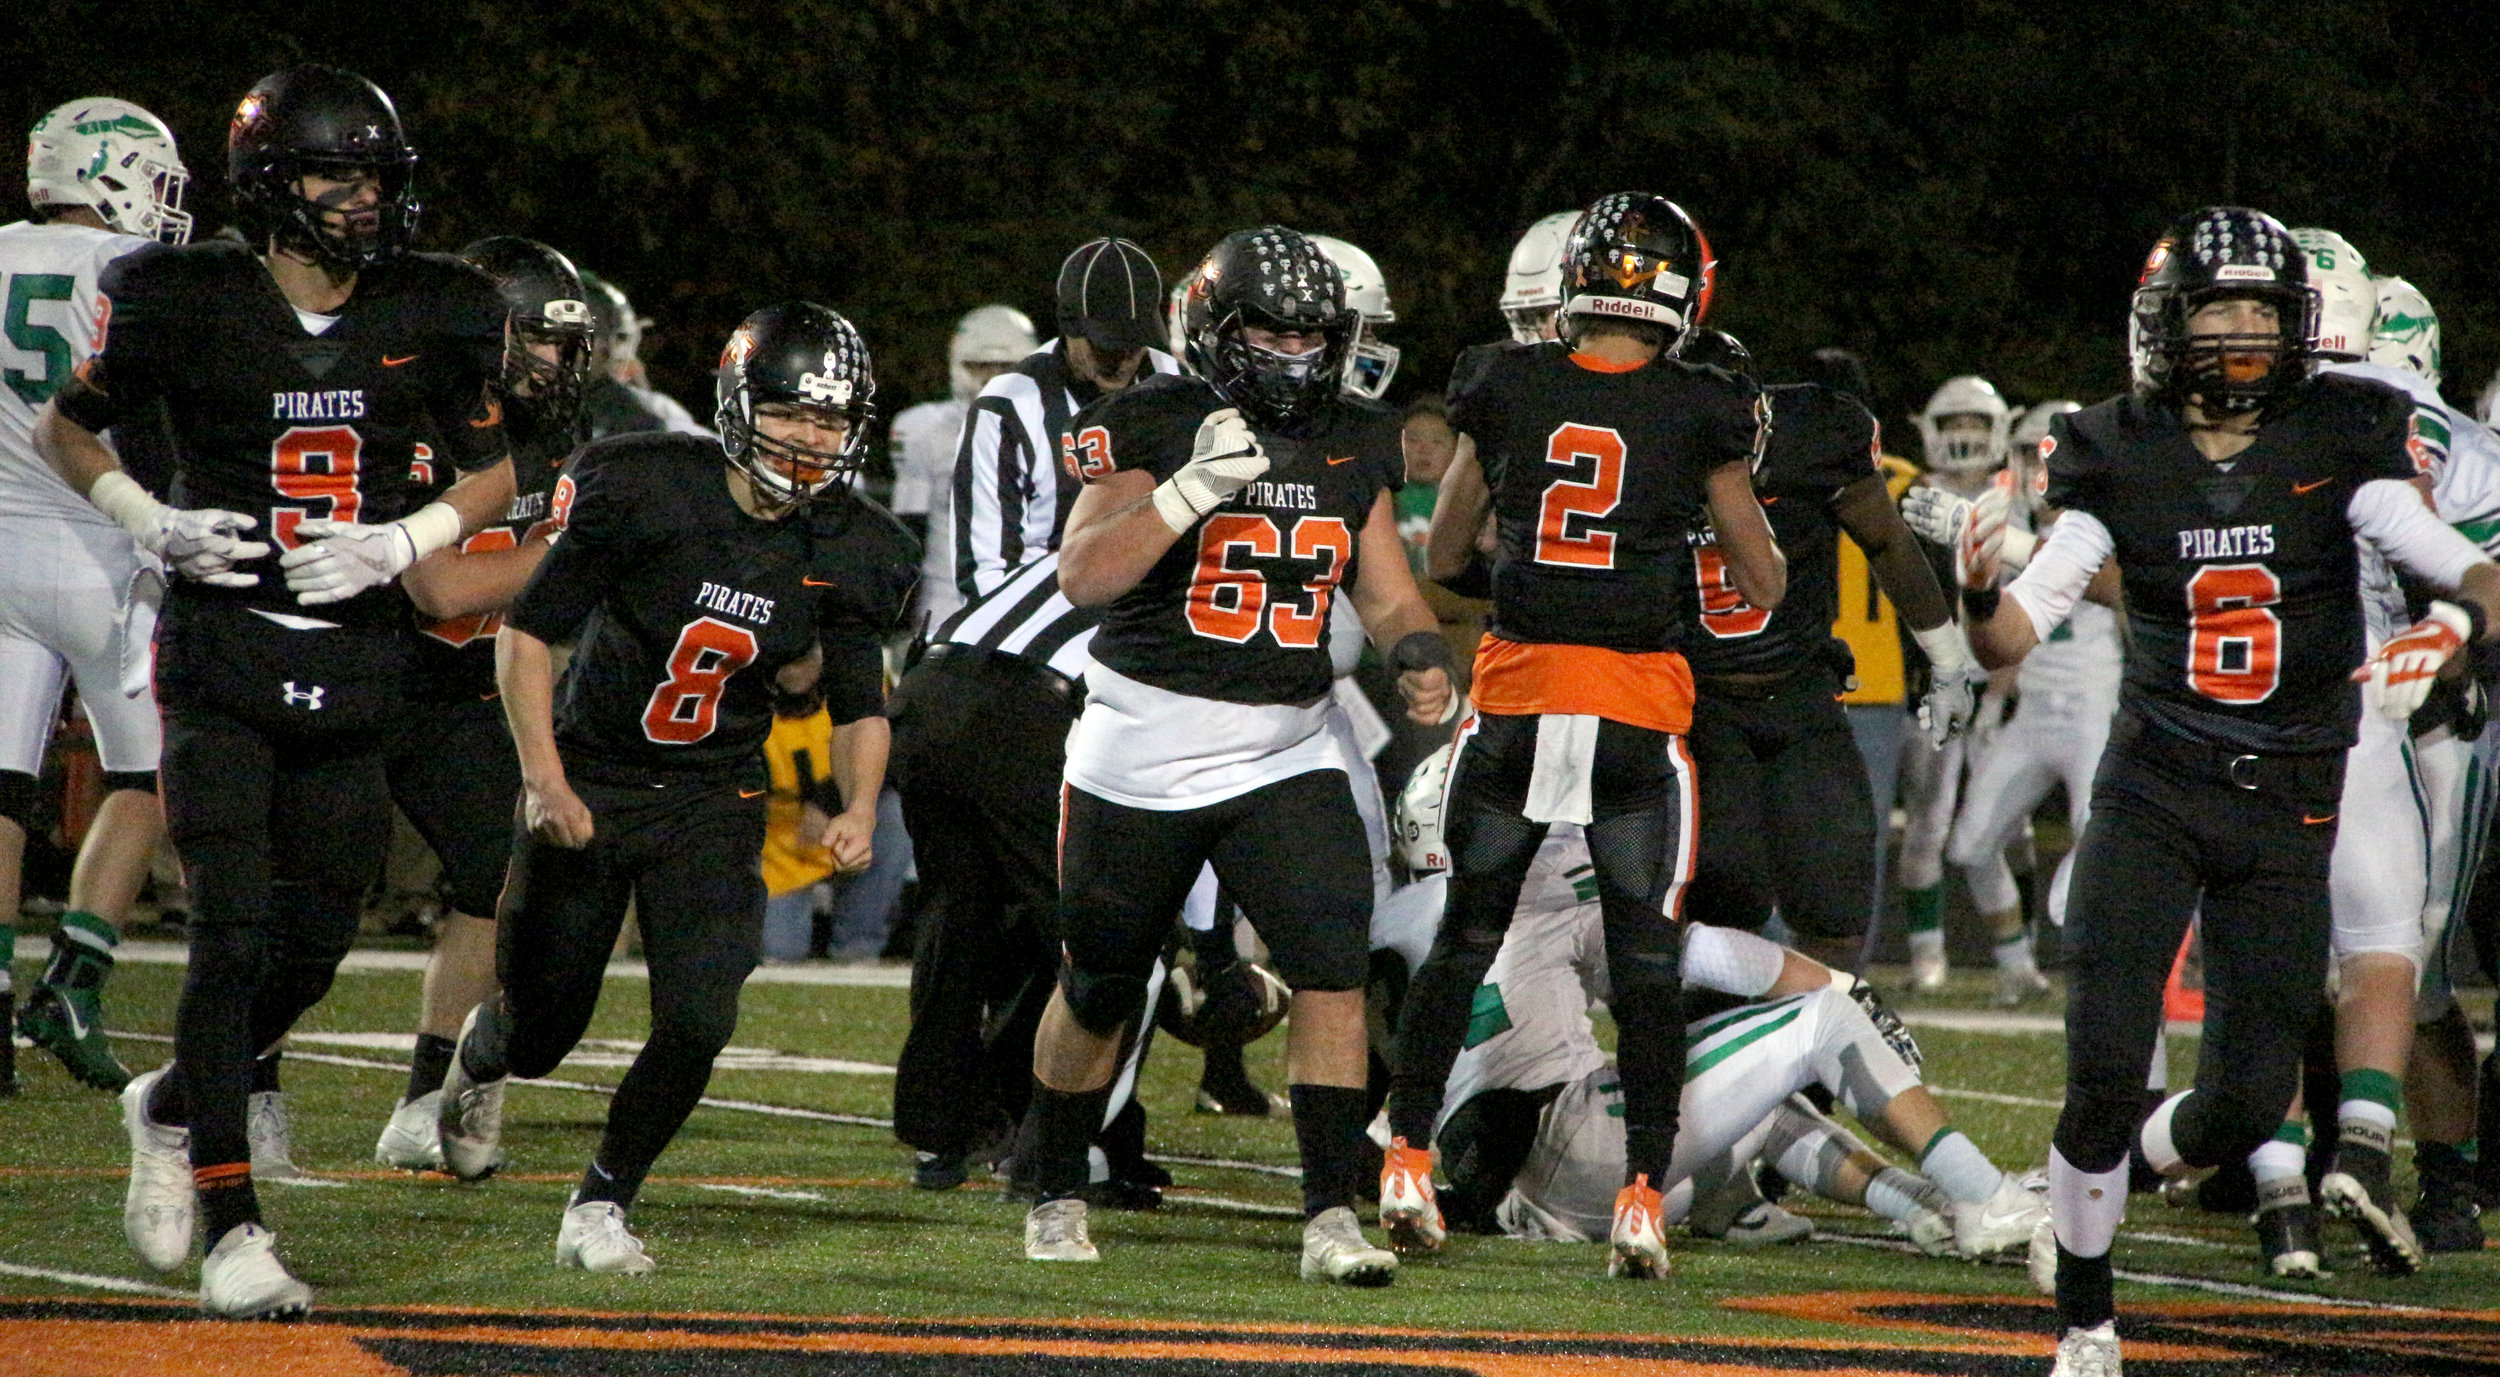 ROSS MARTIN/Citizen photo Platte County defenders Dylan Gilbert (9), Hunter Tongate (8), Sage Smart (63) and Nolan Saale (6) celebrate a stop in the second half of a Class 4 District 8 semifinal win over Smithville on Friday, Oct. 27 at Pirate Stadium. Platte County won 42-13.